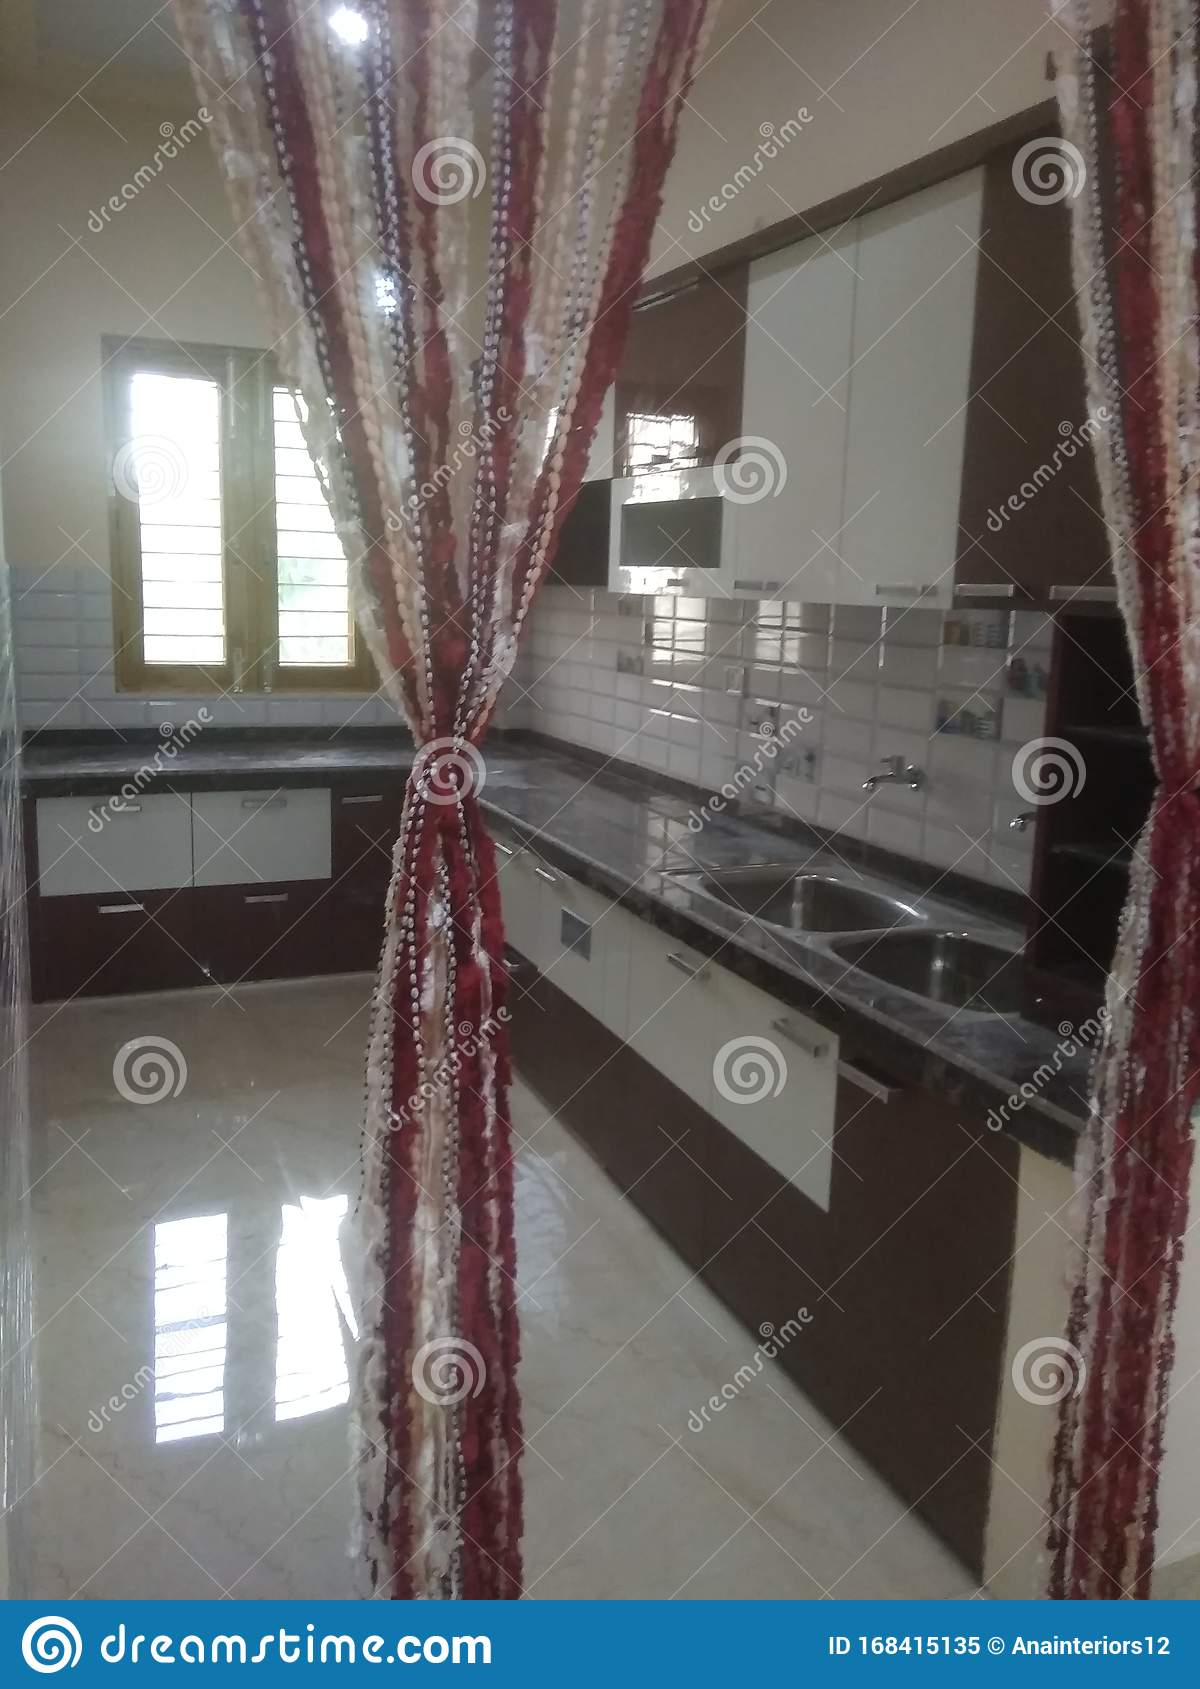 This Is A Indian Small Kitchen Stock Image Image Of Design Family 168415135